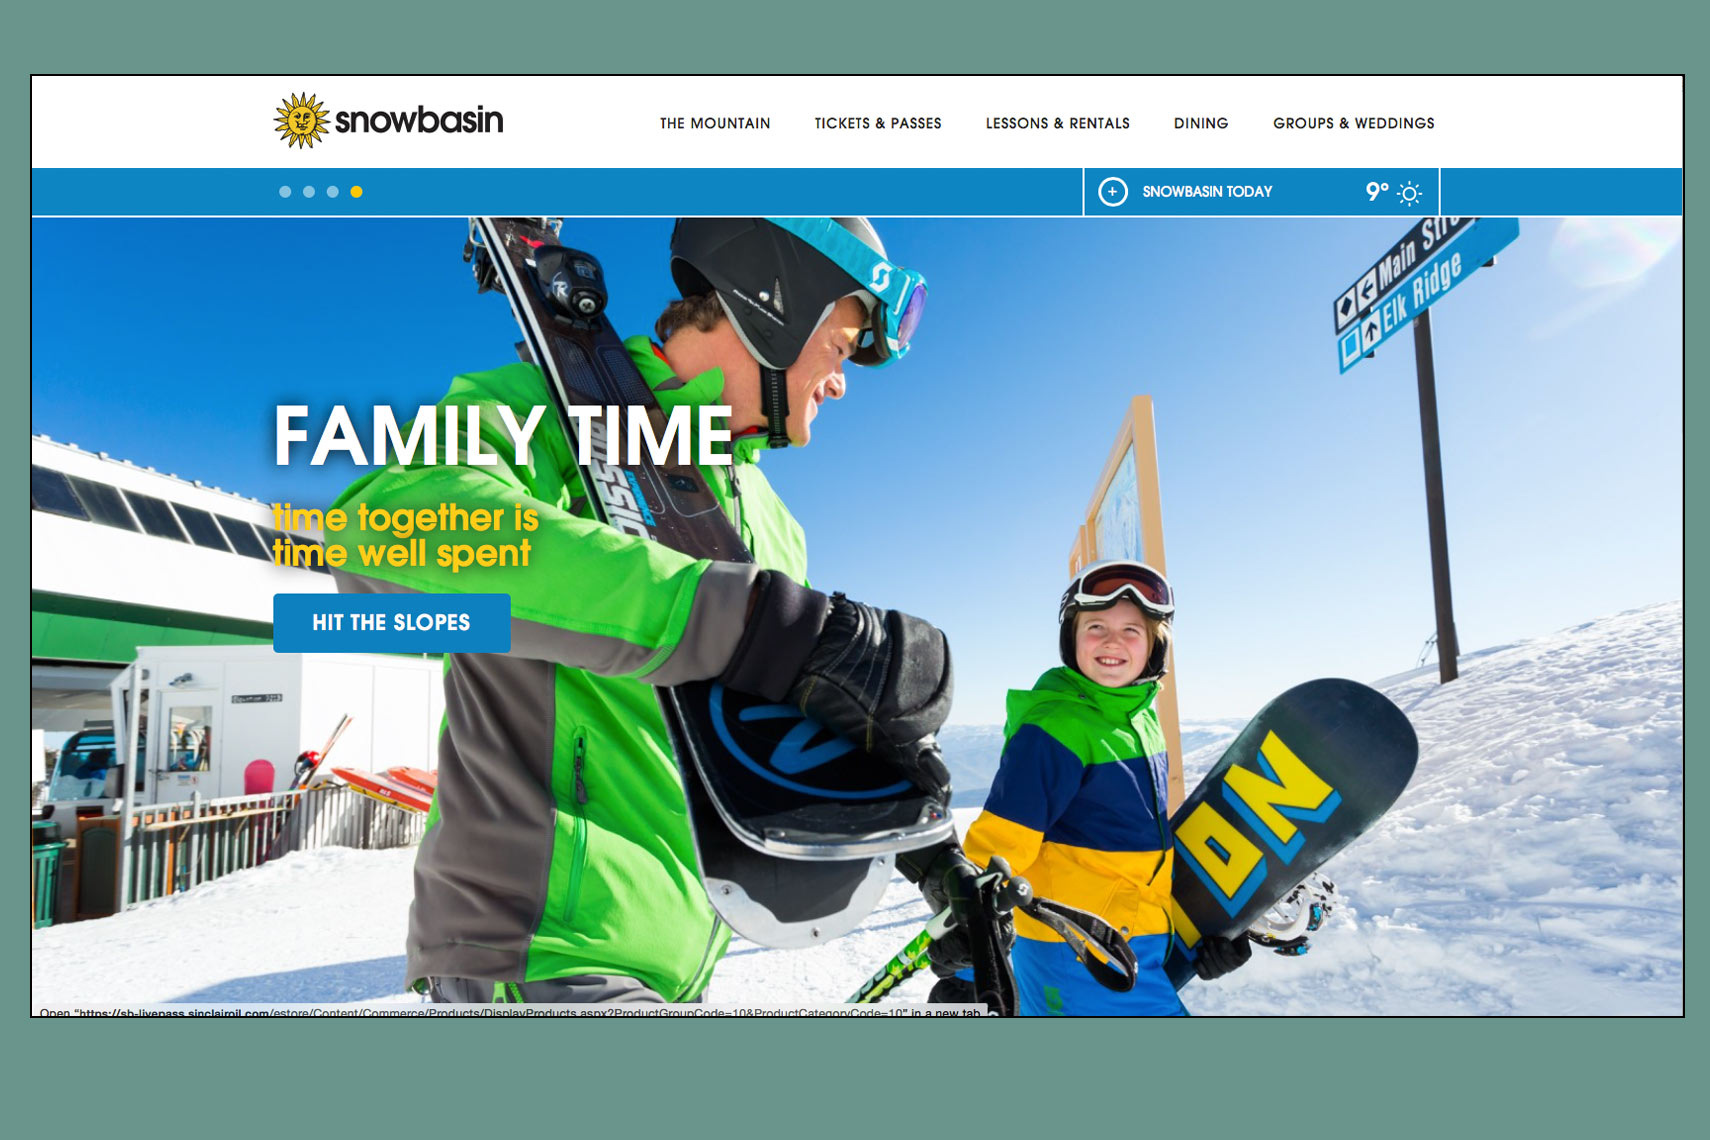 Snowbasin-Ski-Resort-Web-Home-Page-Slideshow-02